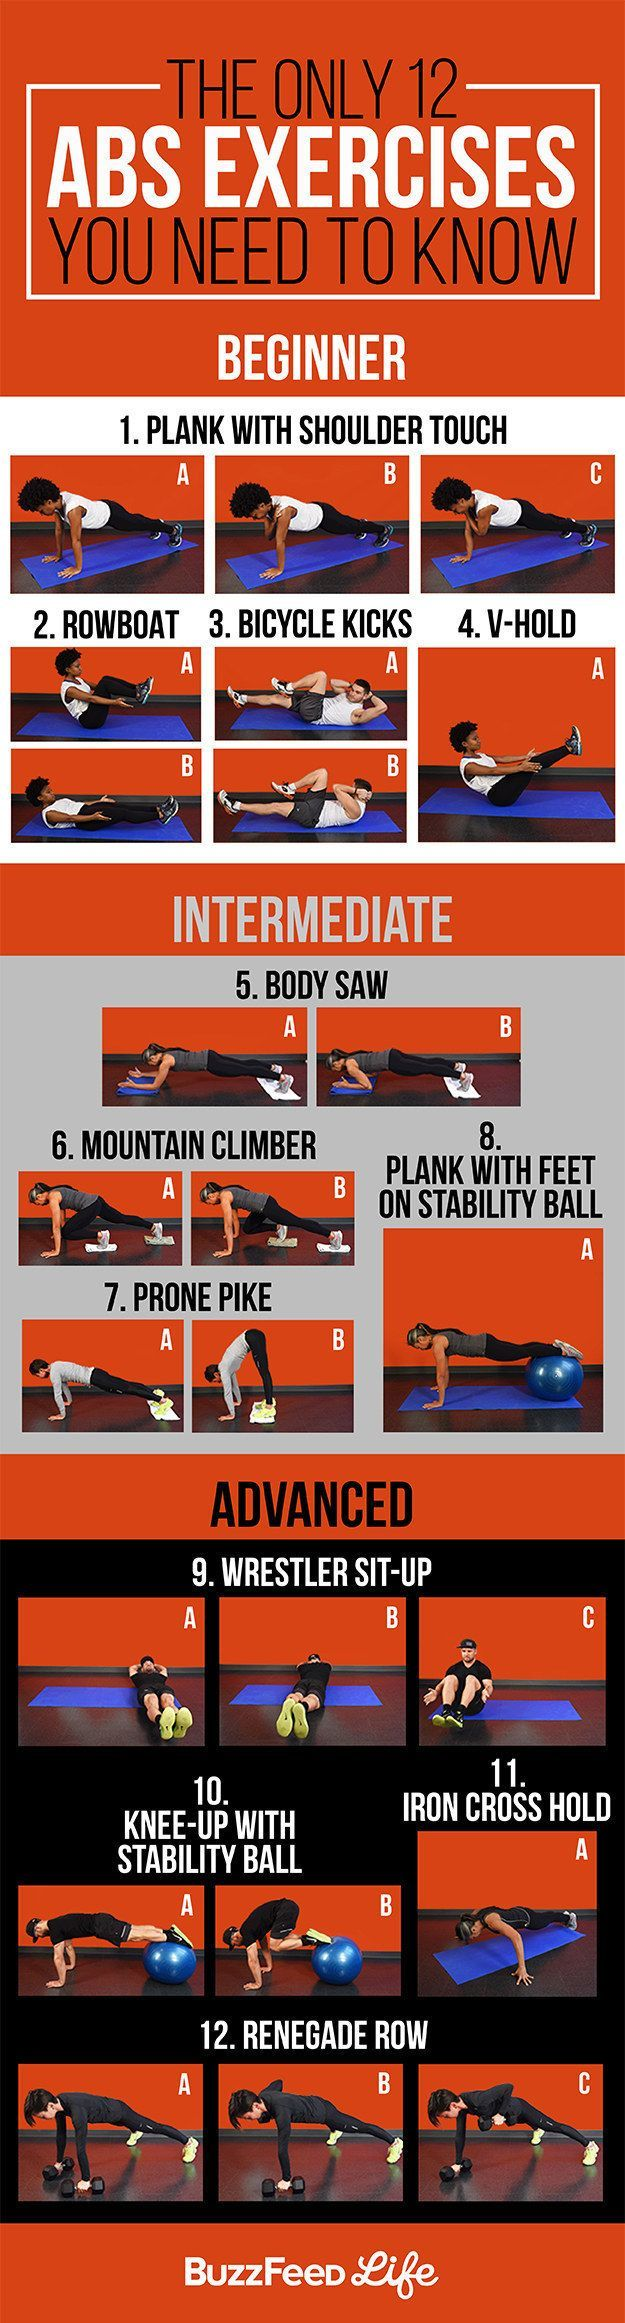 The Only 12 Abs Exercises You Need To Know